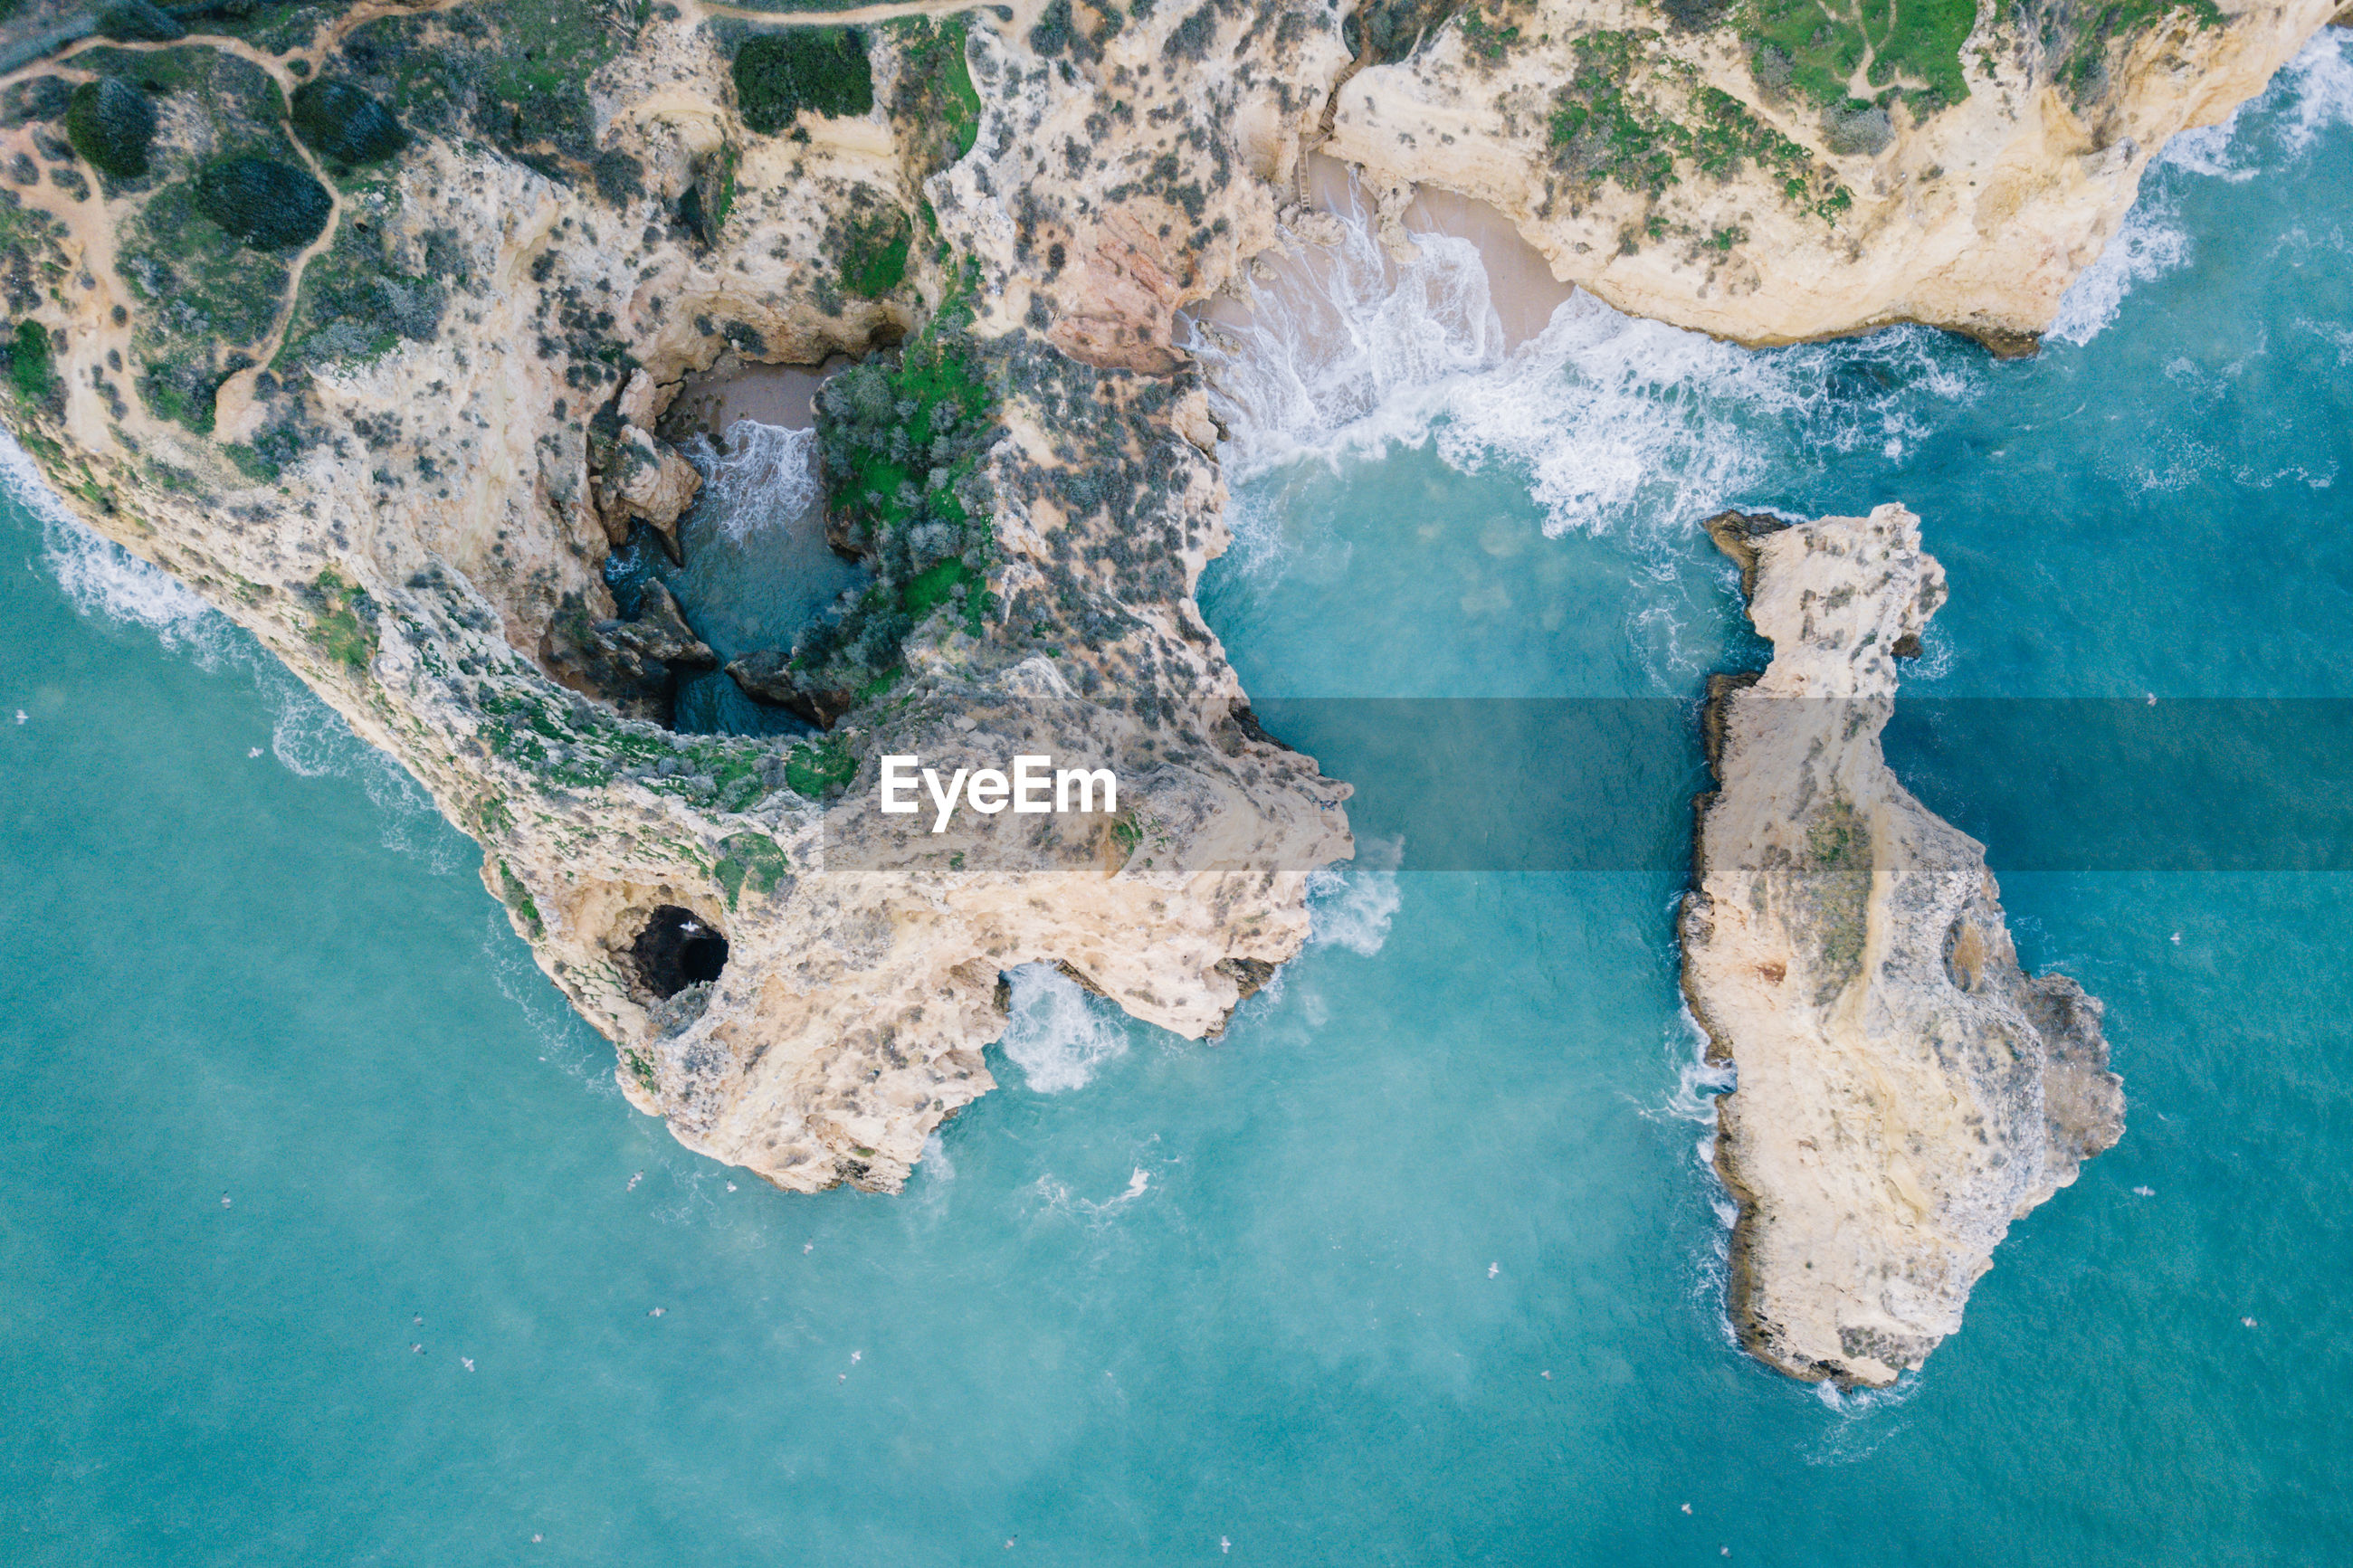 AERIAL VIEW OF ROCK IN SEA